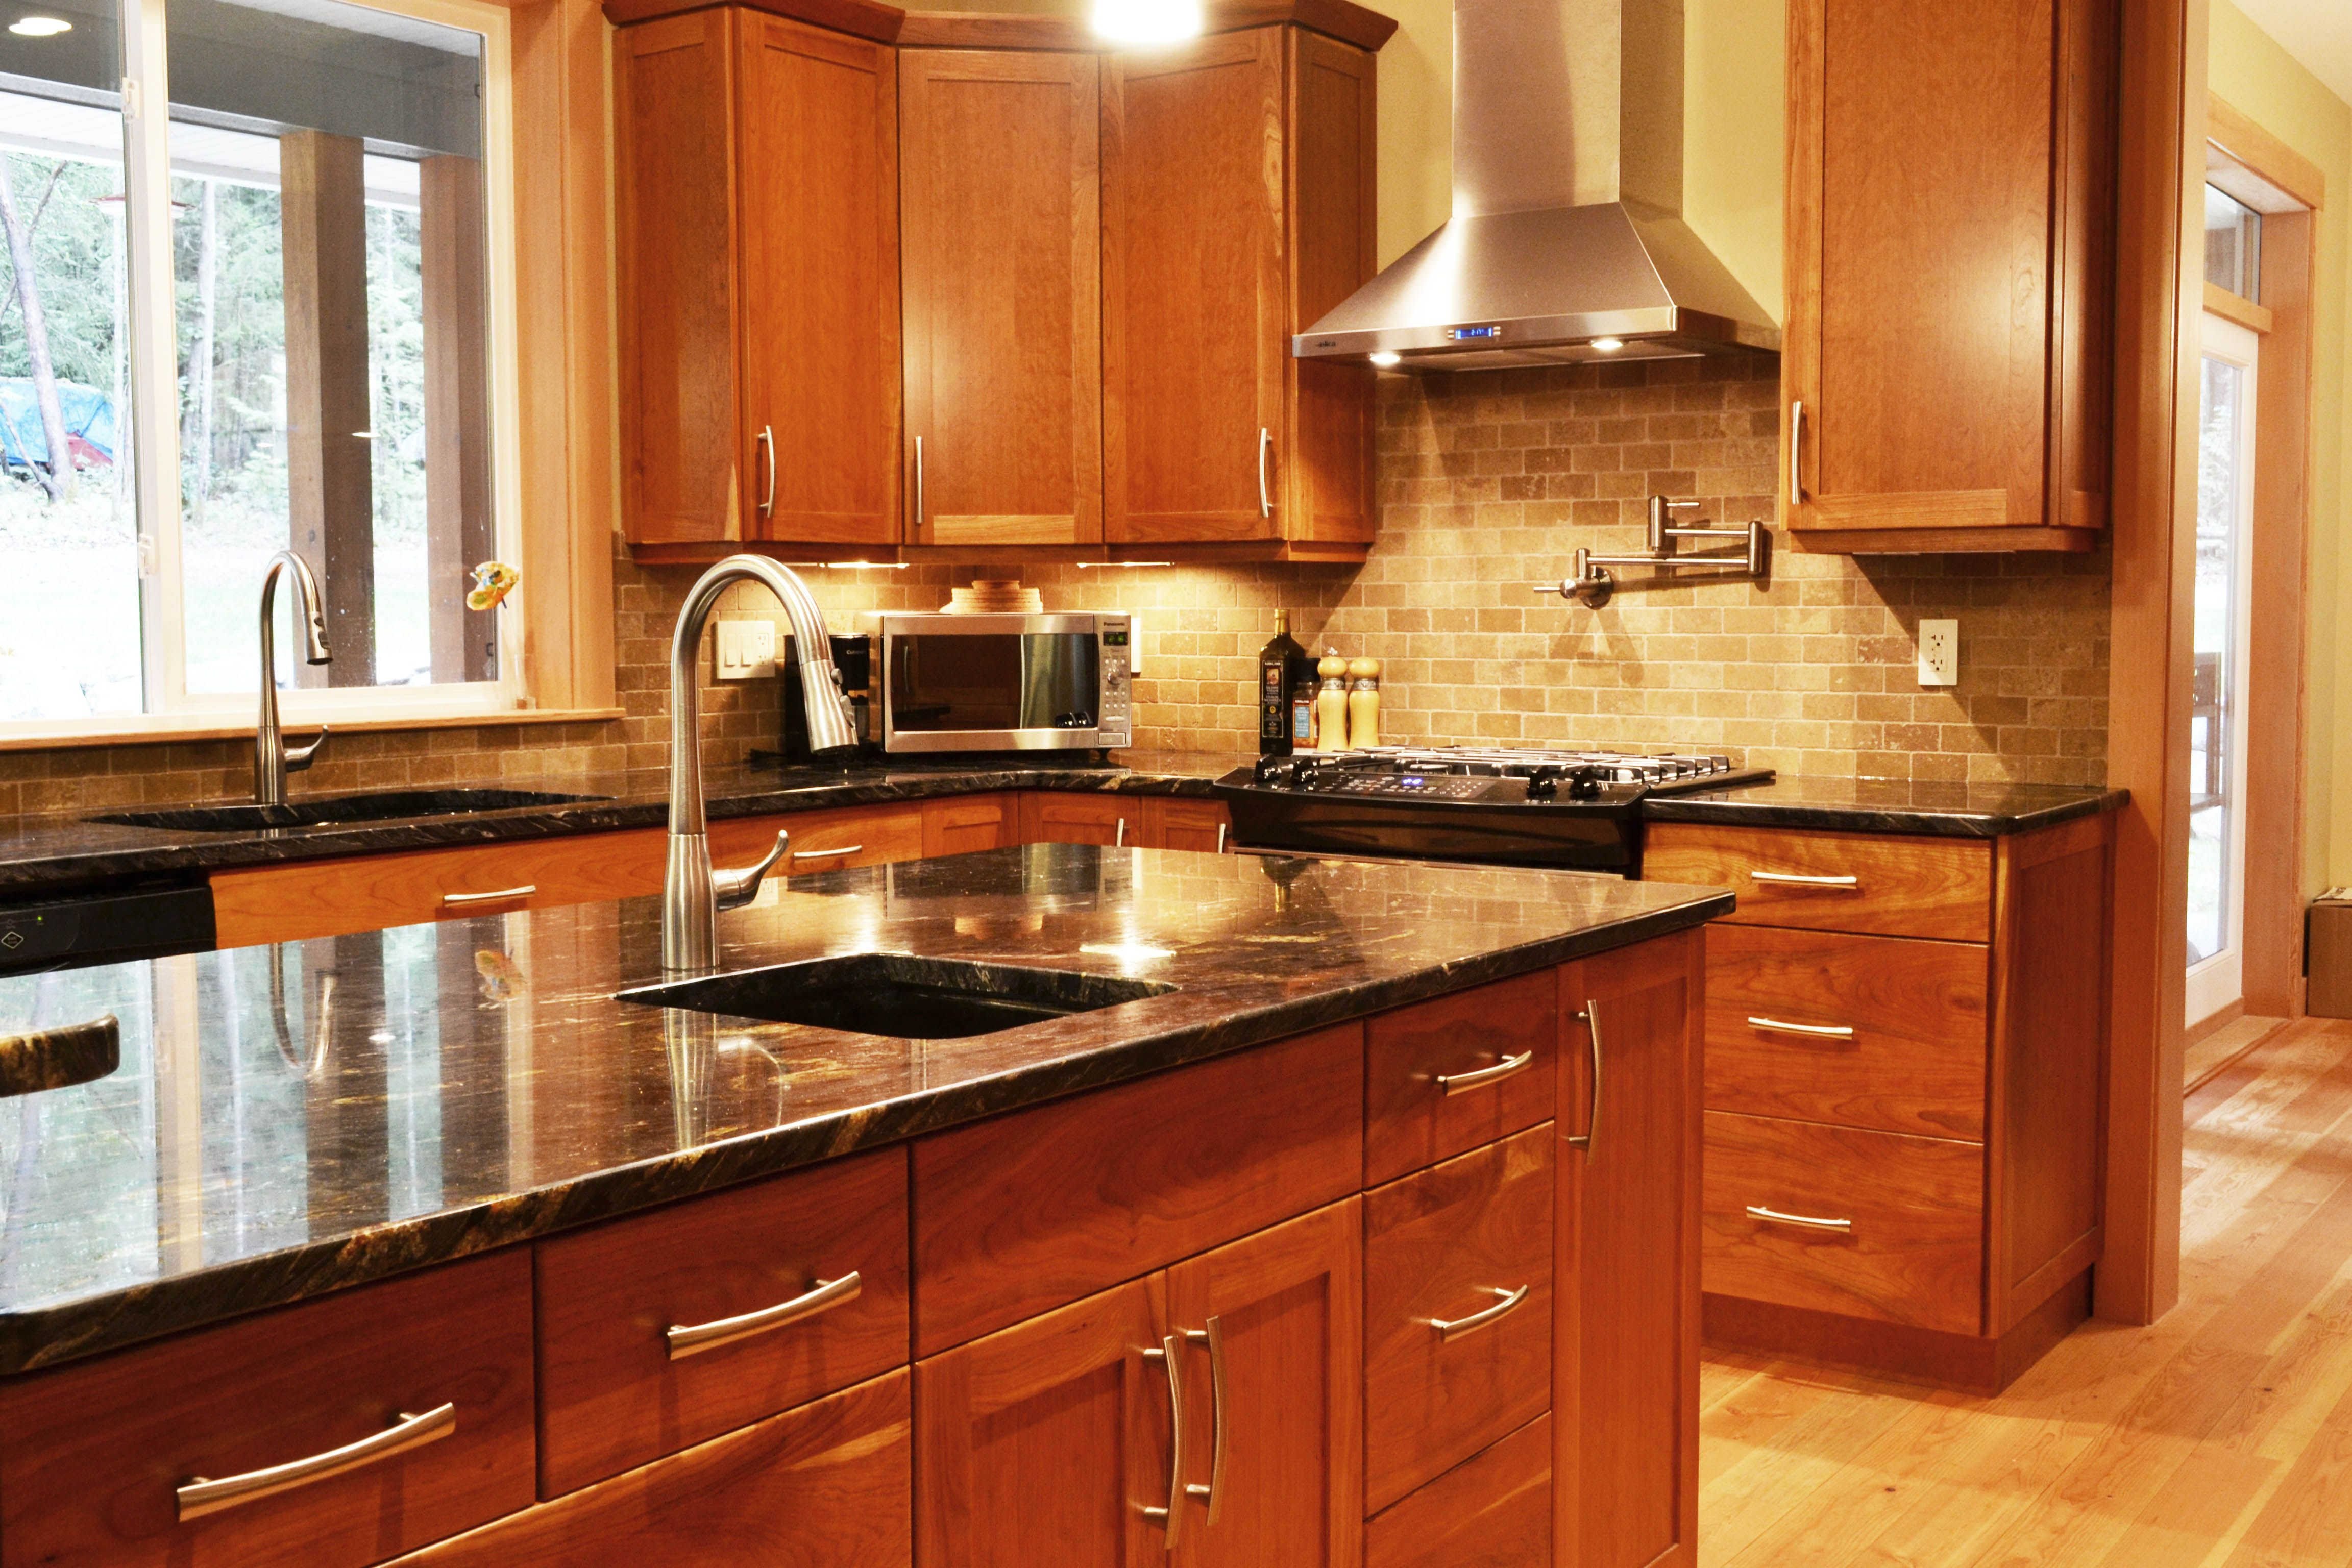 Natural Cherry Kitchen Cabinets   Cabinets 4608x3072 ...